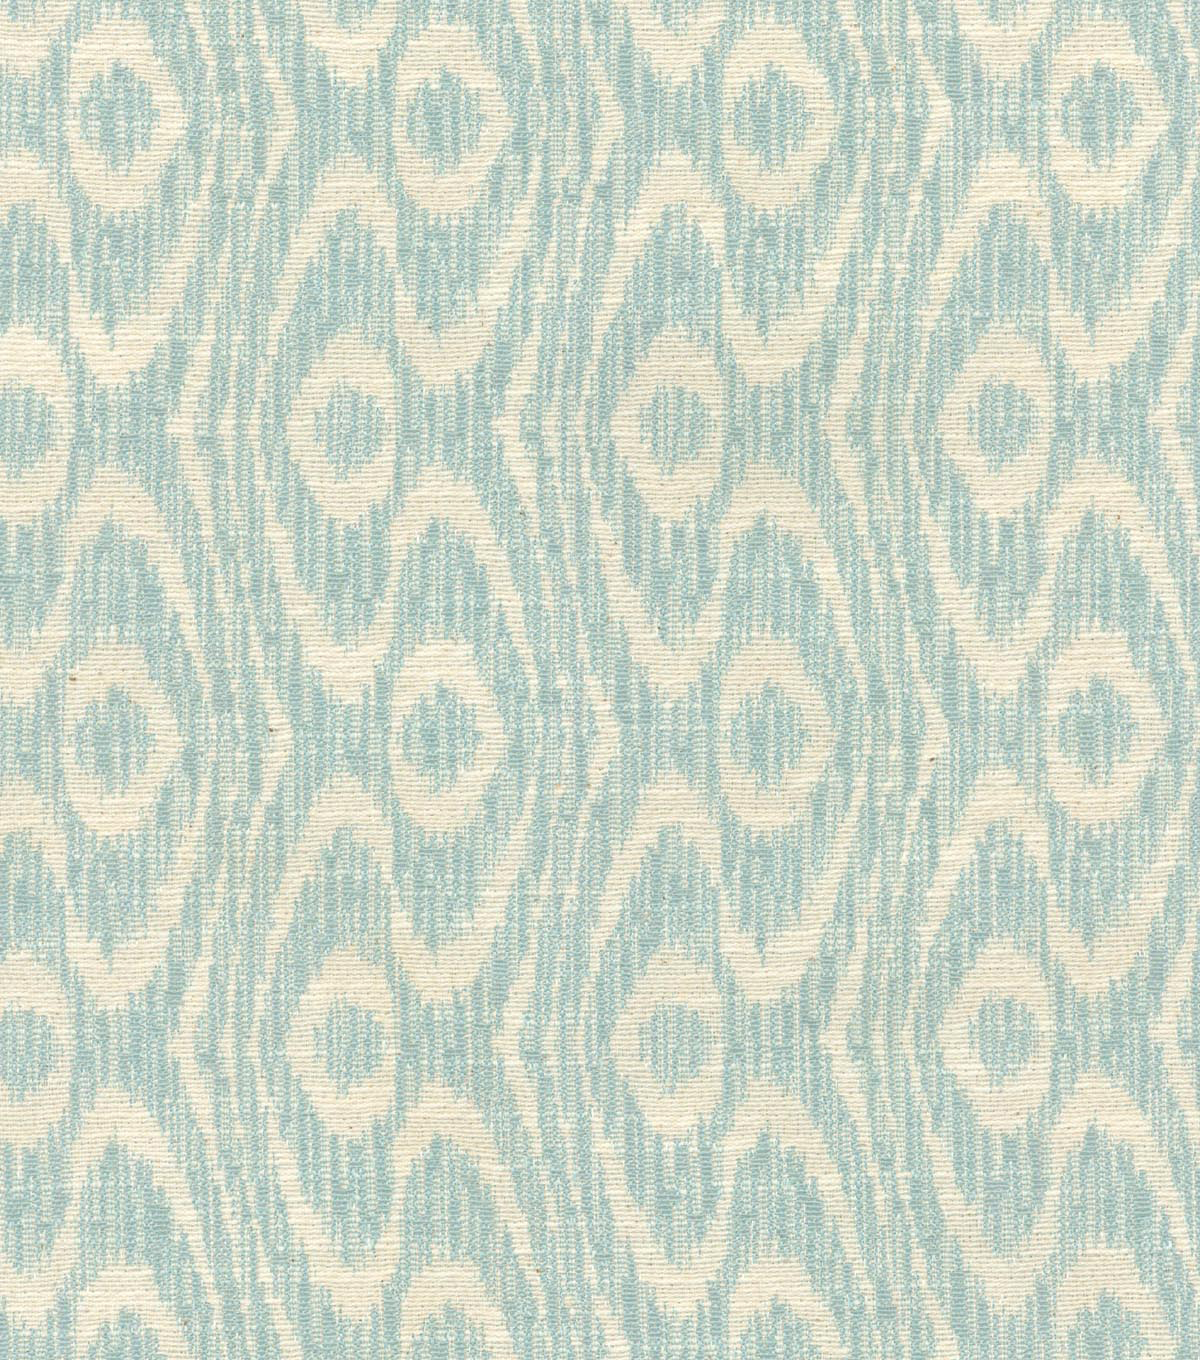 Home Decor 8\u0022x8\u0022 Swatch Fabric-Tracy Porter Acres Beyond Lagoon